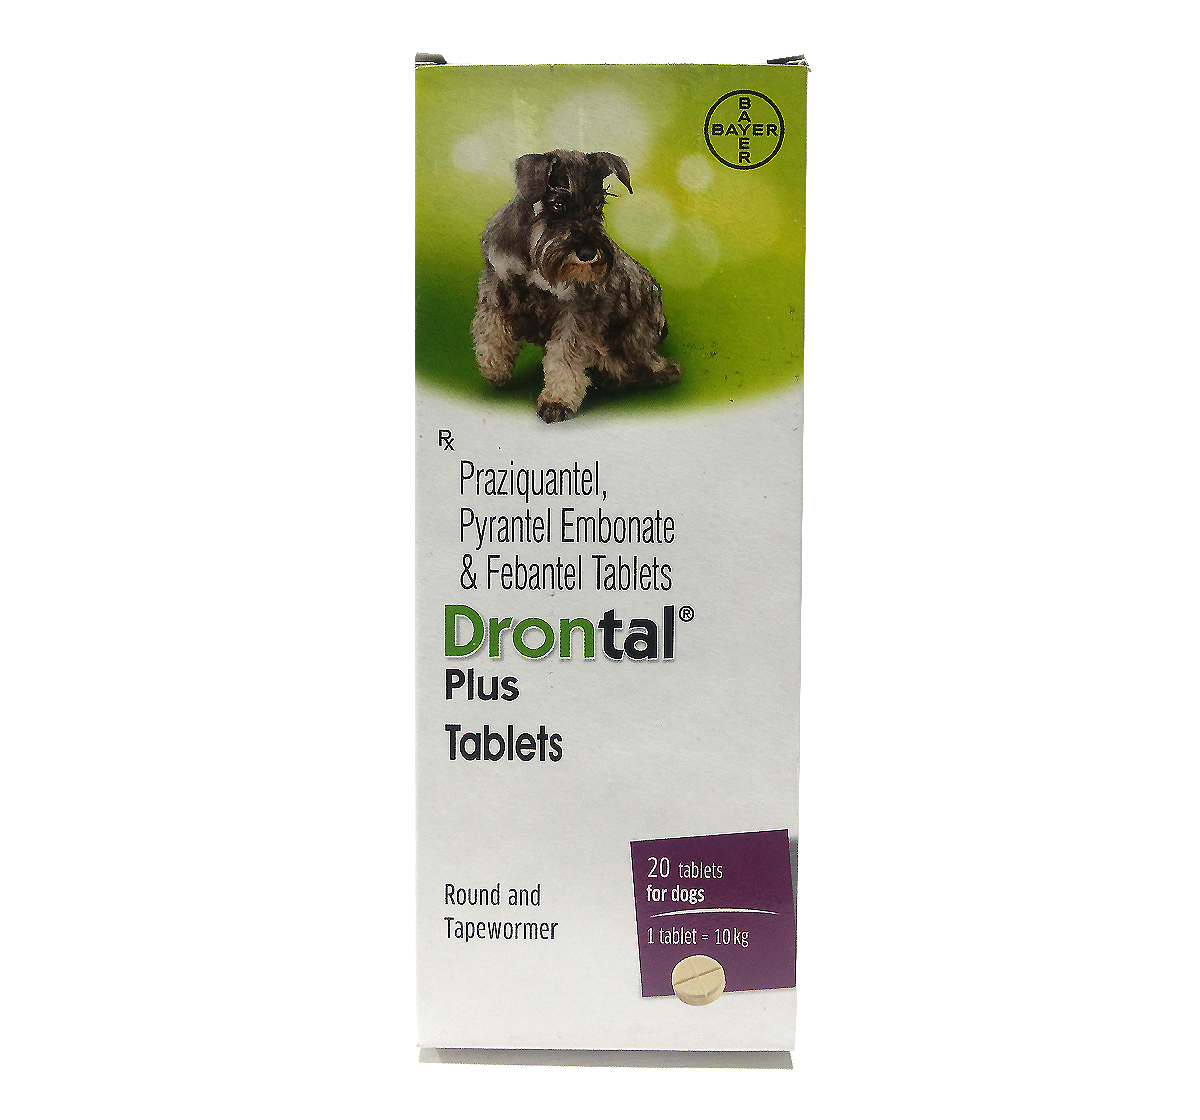 Drontal Plus / Antiparasitic tablets - Veterinary pharmacy